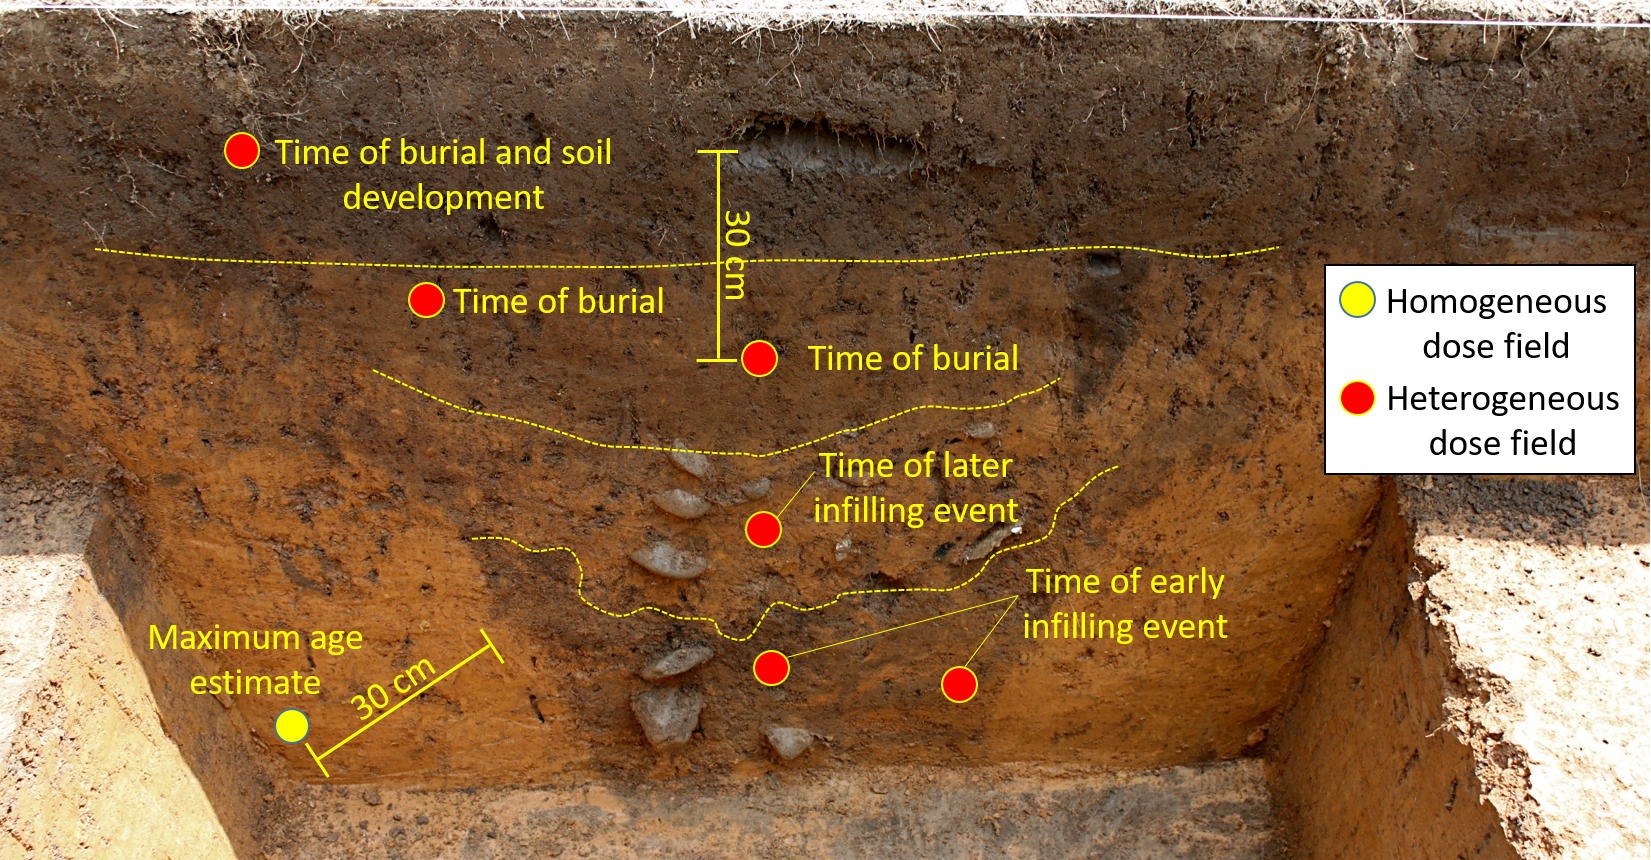 "Possible sample sites (circles) for luminescence dating an earthwork ditch exposed in an archaeological trench at Garden Creek (Wright, 2011, ""Earthwork Update""  https://gardencreekarchaeology.wordpress.com/page/3/ ). The yellow circle shows a sample site where the gamma dose rate field is likely to be homogeneous. All other sample sites (red) are located in heterogeneous gamma dose rate fields. The 30 cm scale is hypothetical, and may not be accurate."